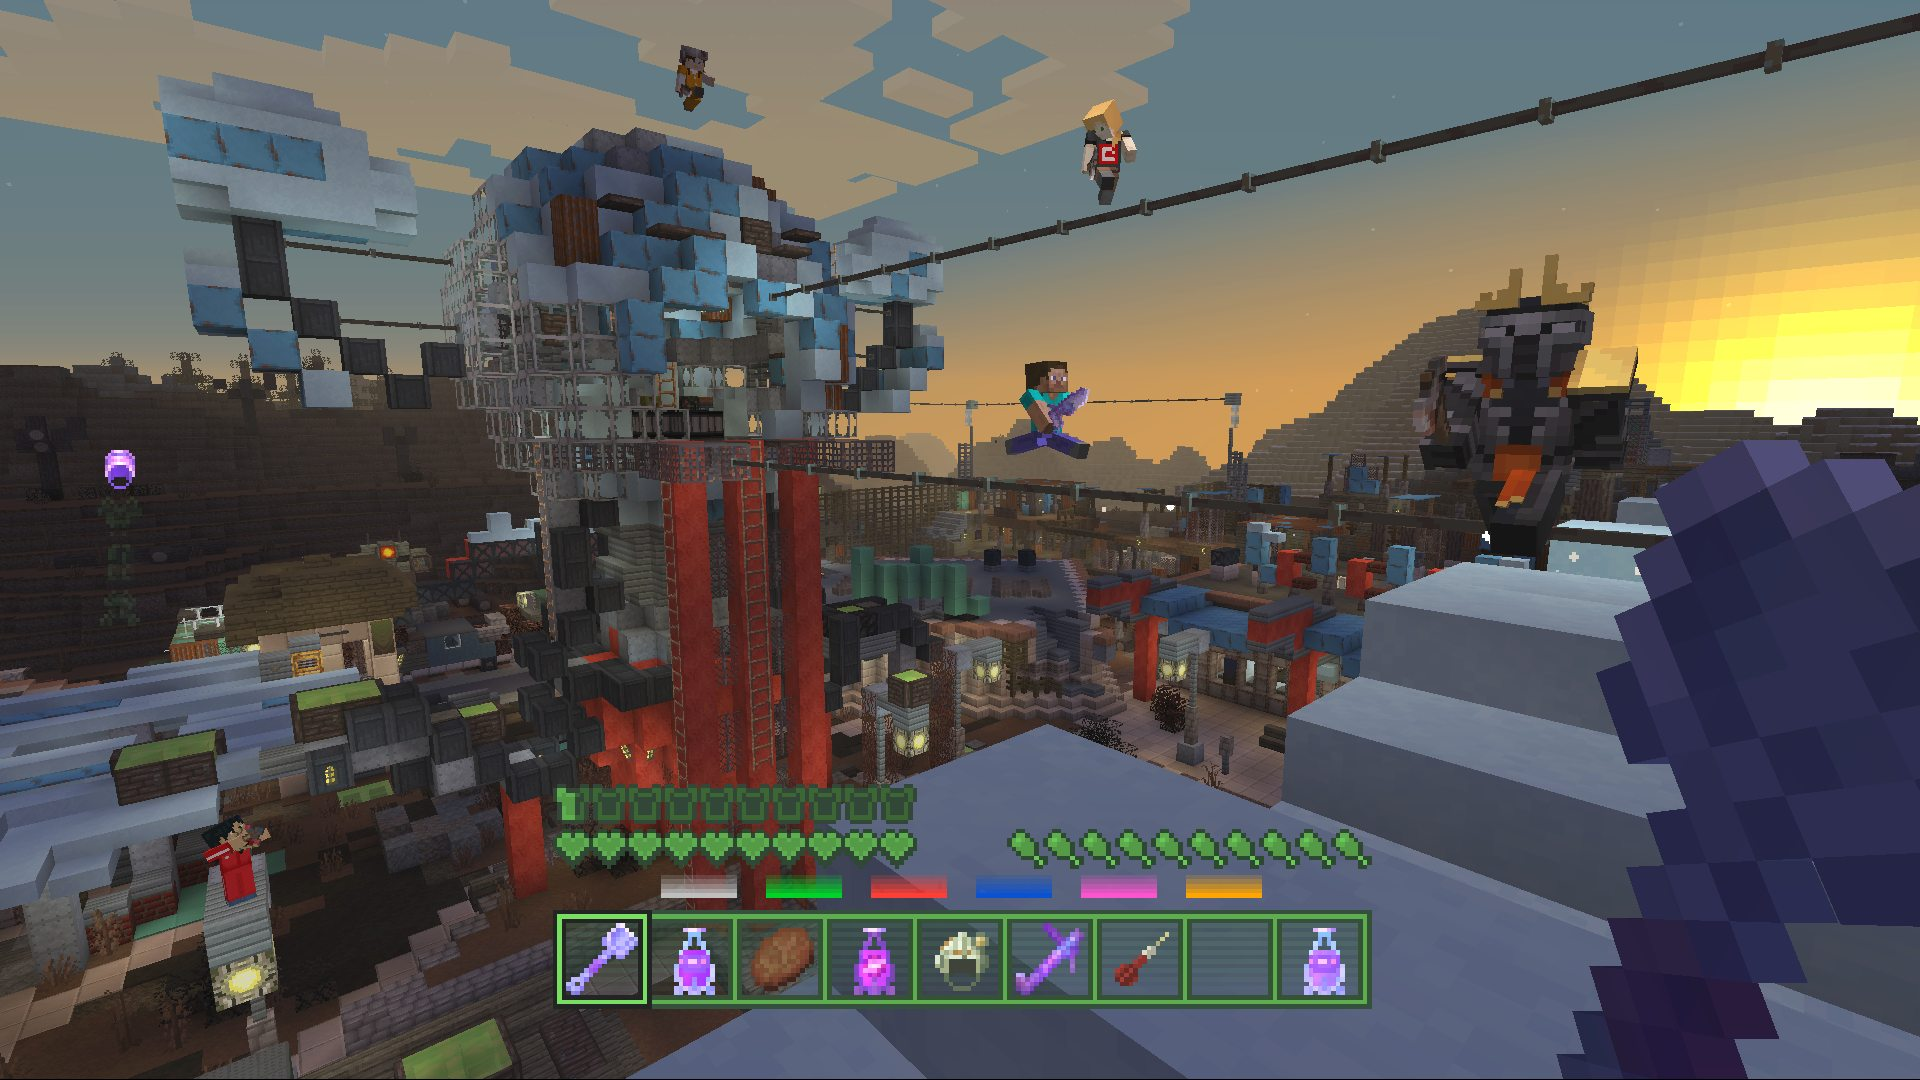 Minecraft Fallout Battle Map Pack on PS4 Official PlayStation